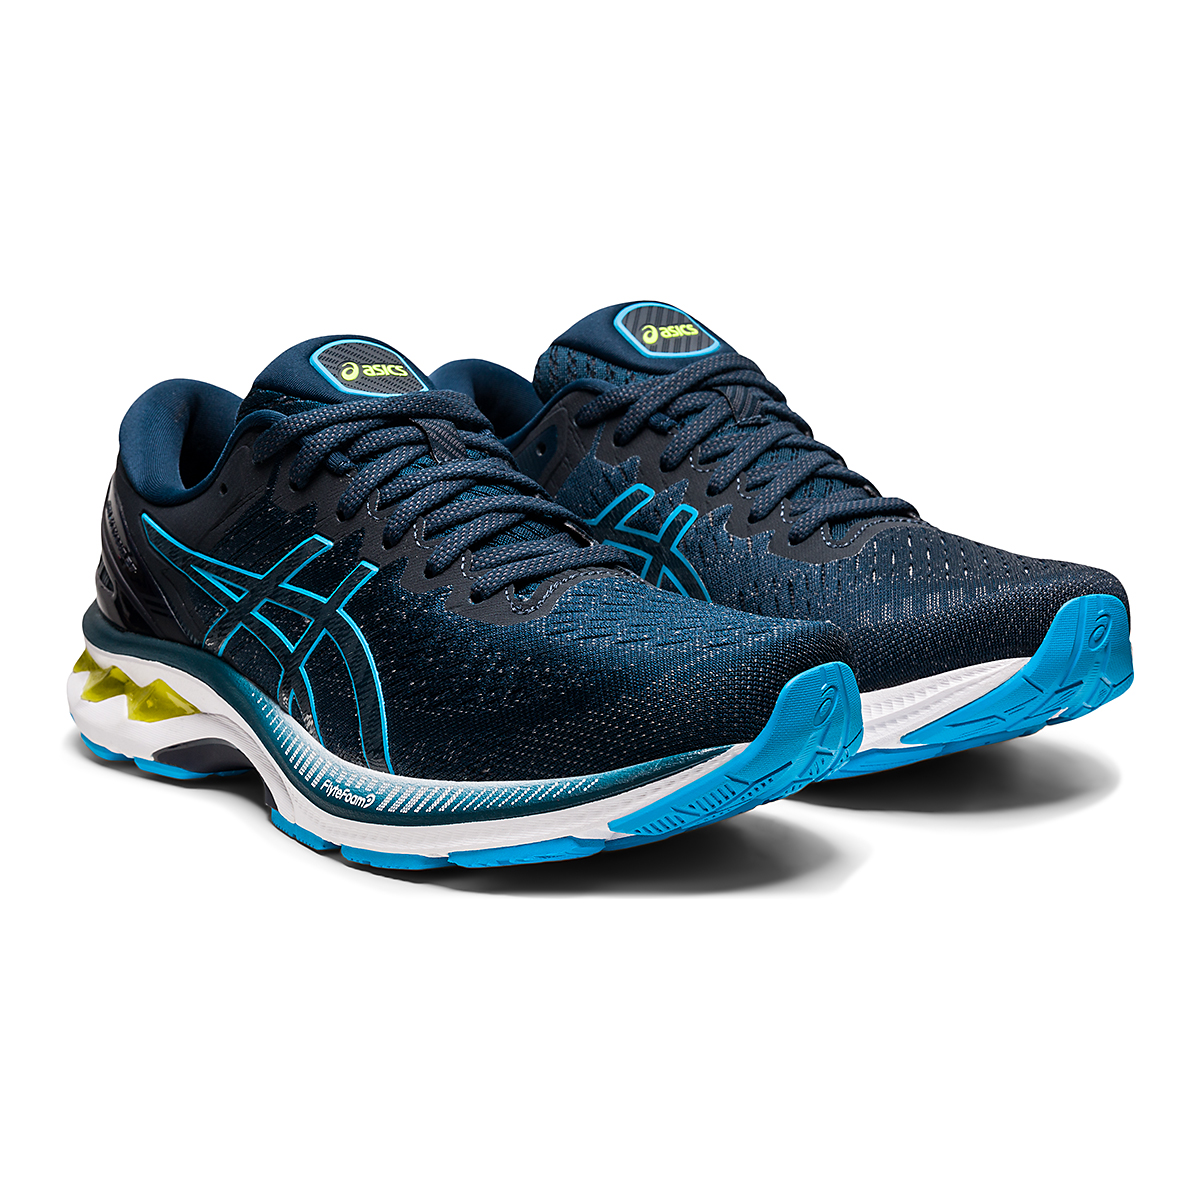 Men's Asics GEL-Kayano 27 Running Shoe - Color: French Blue/Dig - Size: 7.5 - Width: Regular, French Blue/Dig, large, image 3